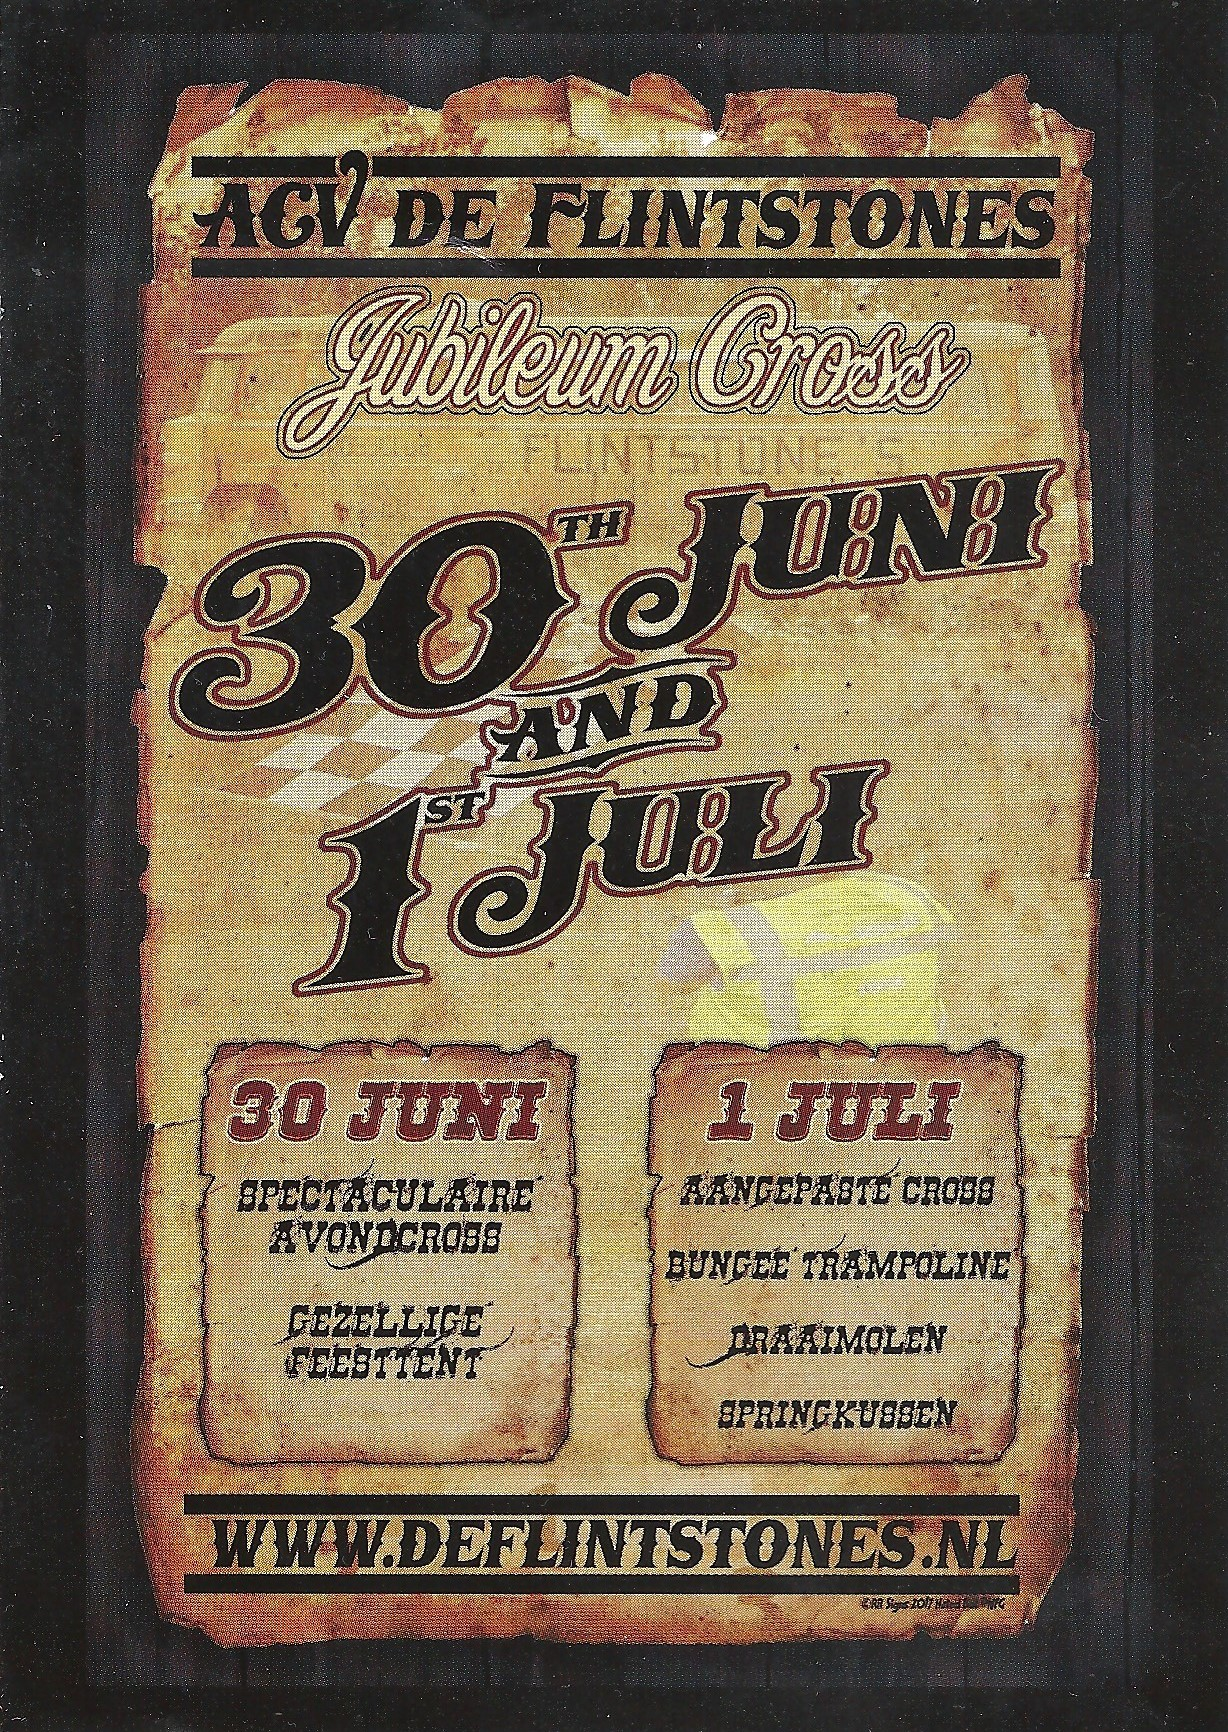 Jublileumcross Biddinghuizen 2017 - flyer